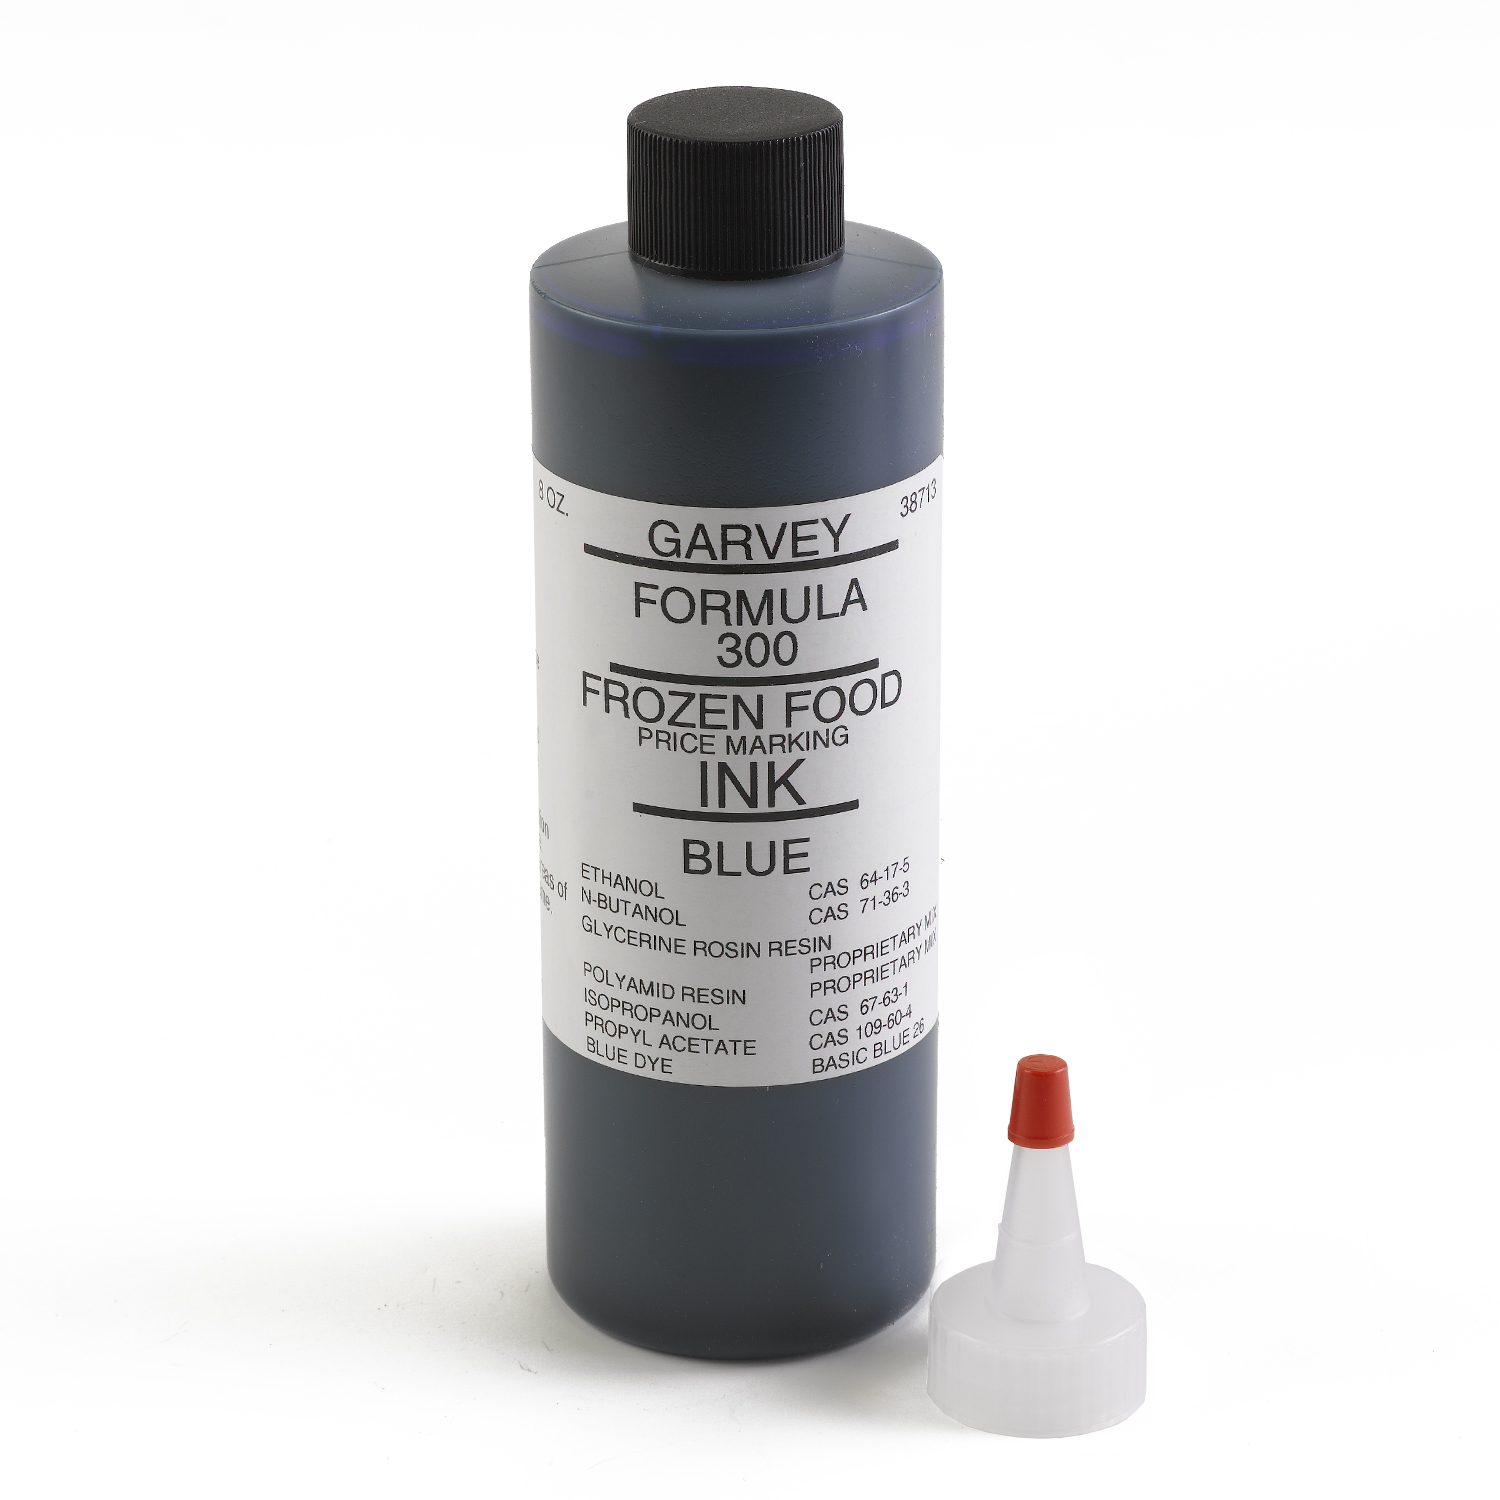 Garvey Freezer Grade Blue Price Marking Ink 8 oz